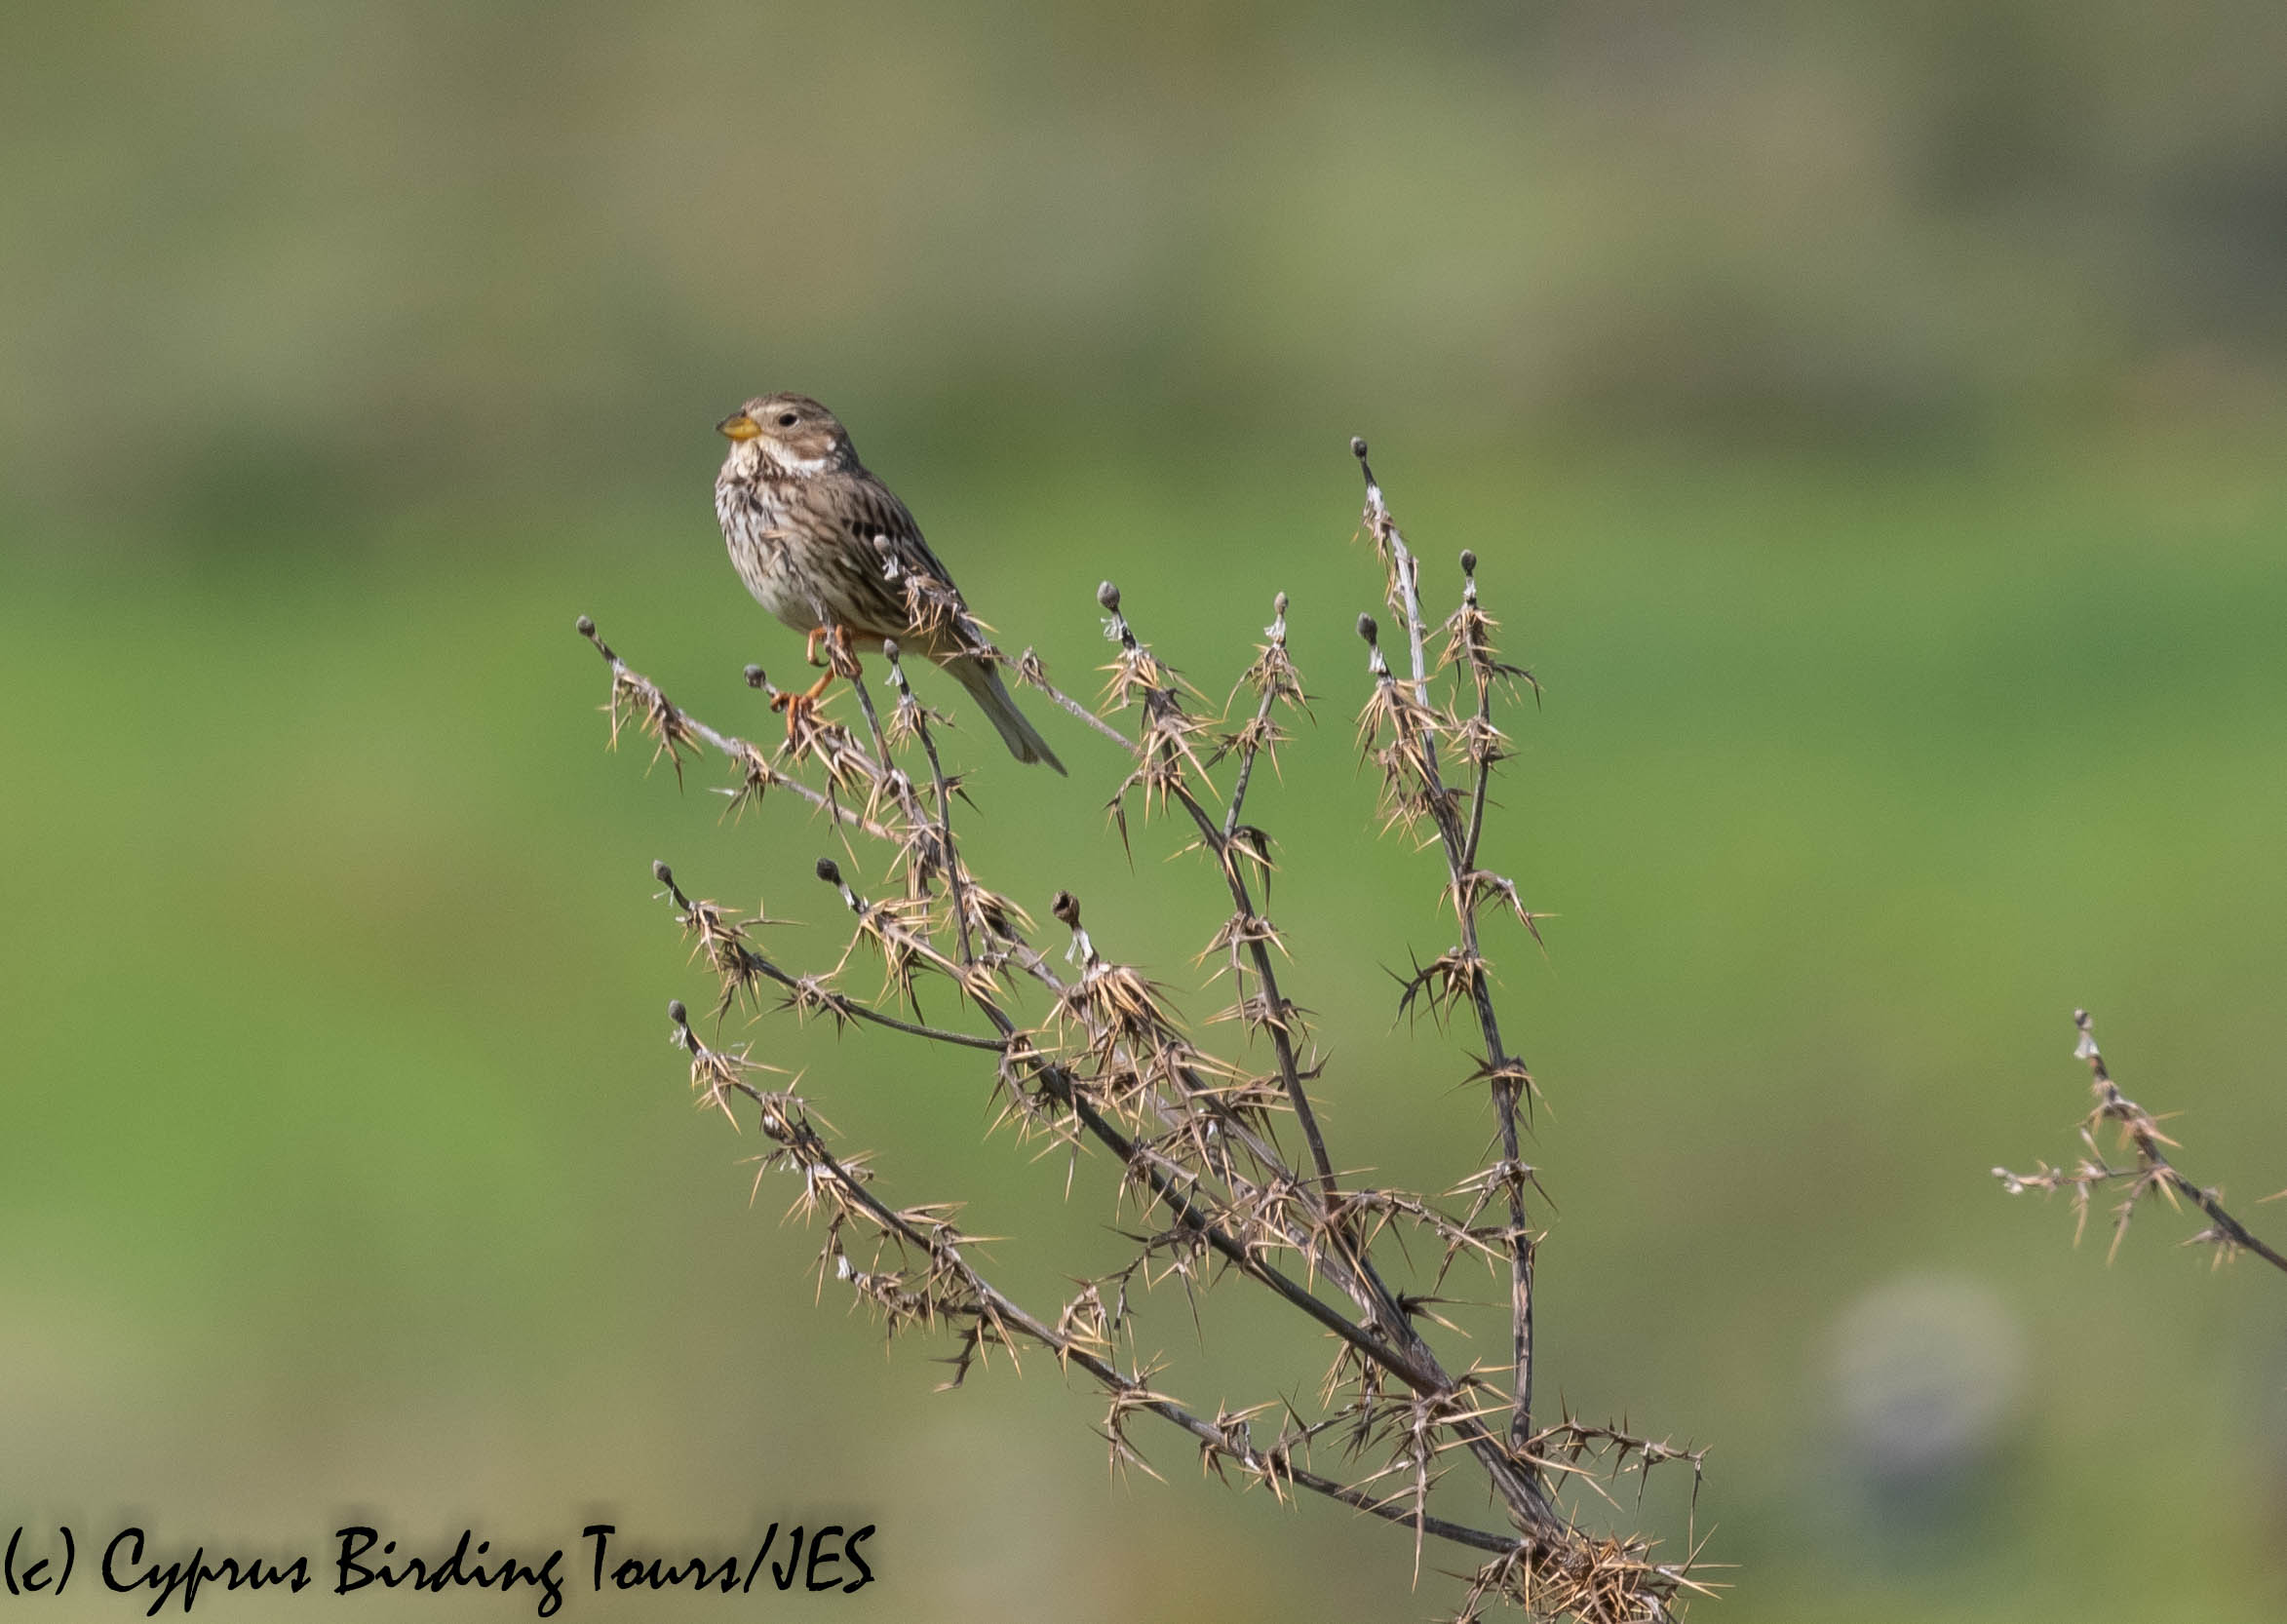 Corn Bunting, Anarita Park 23rd March 2019 (c) Cyprus Birding Tours